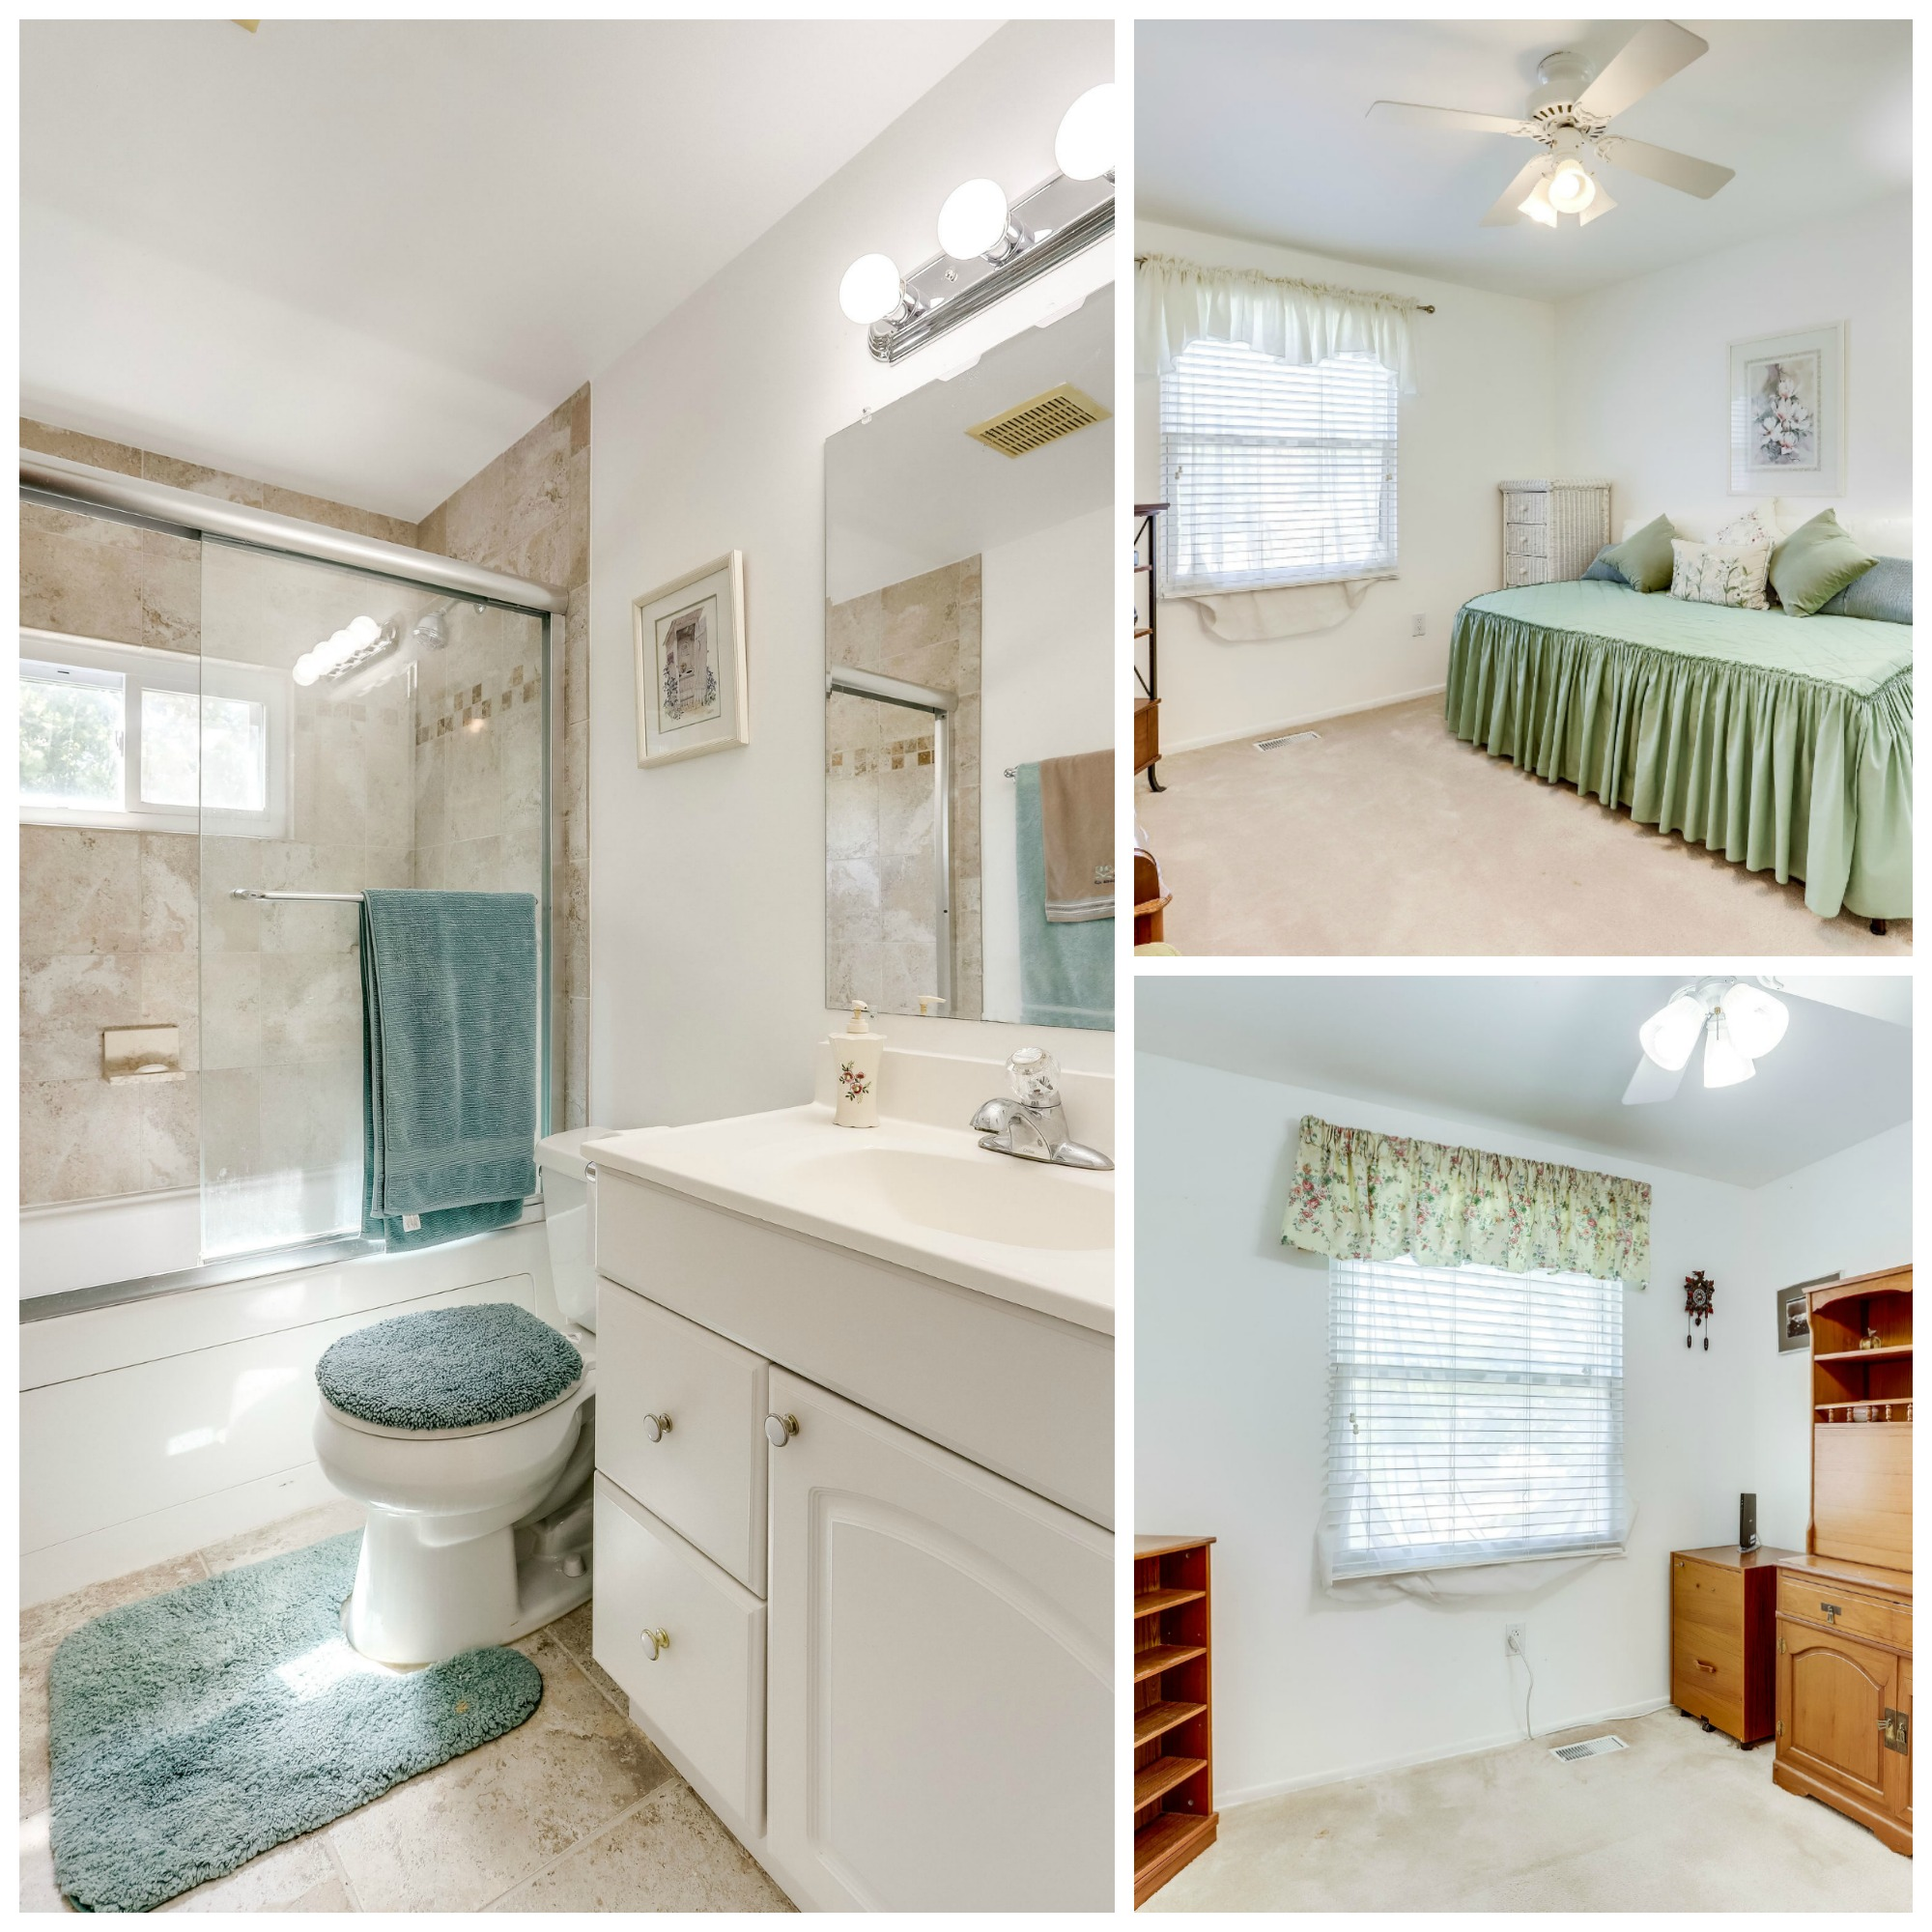 128 N Garfield- Sterling Park- Bathroom and Two Additional Bedrooms